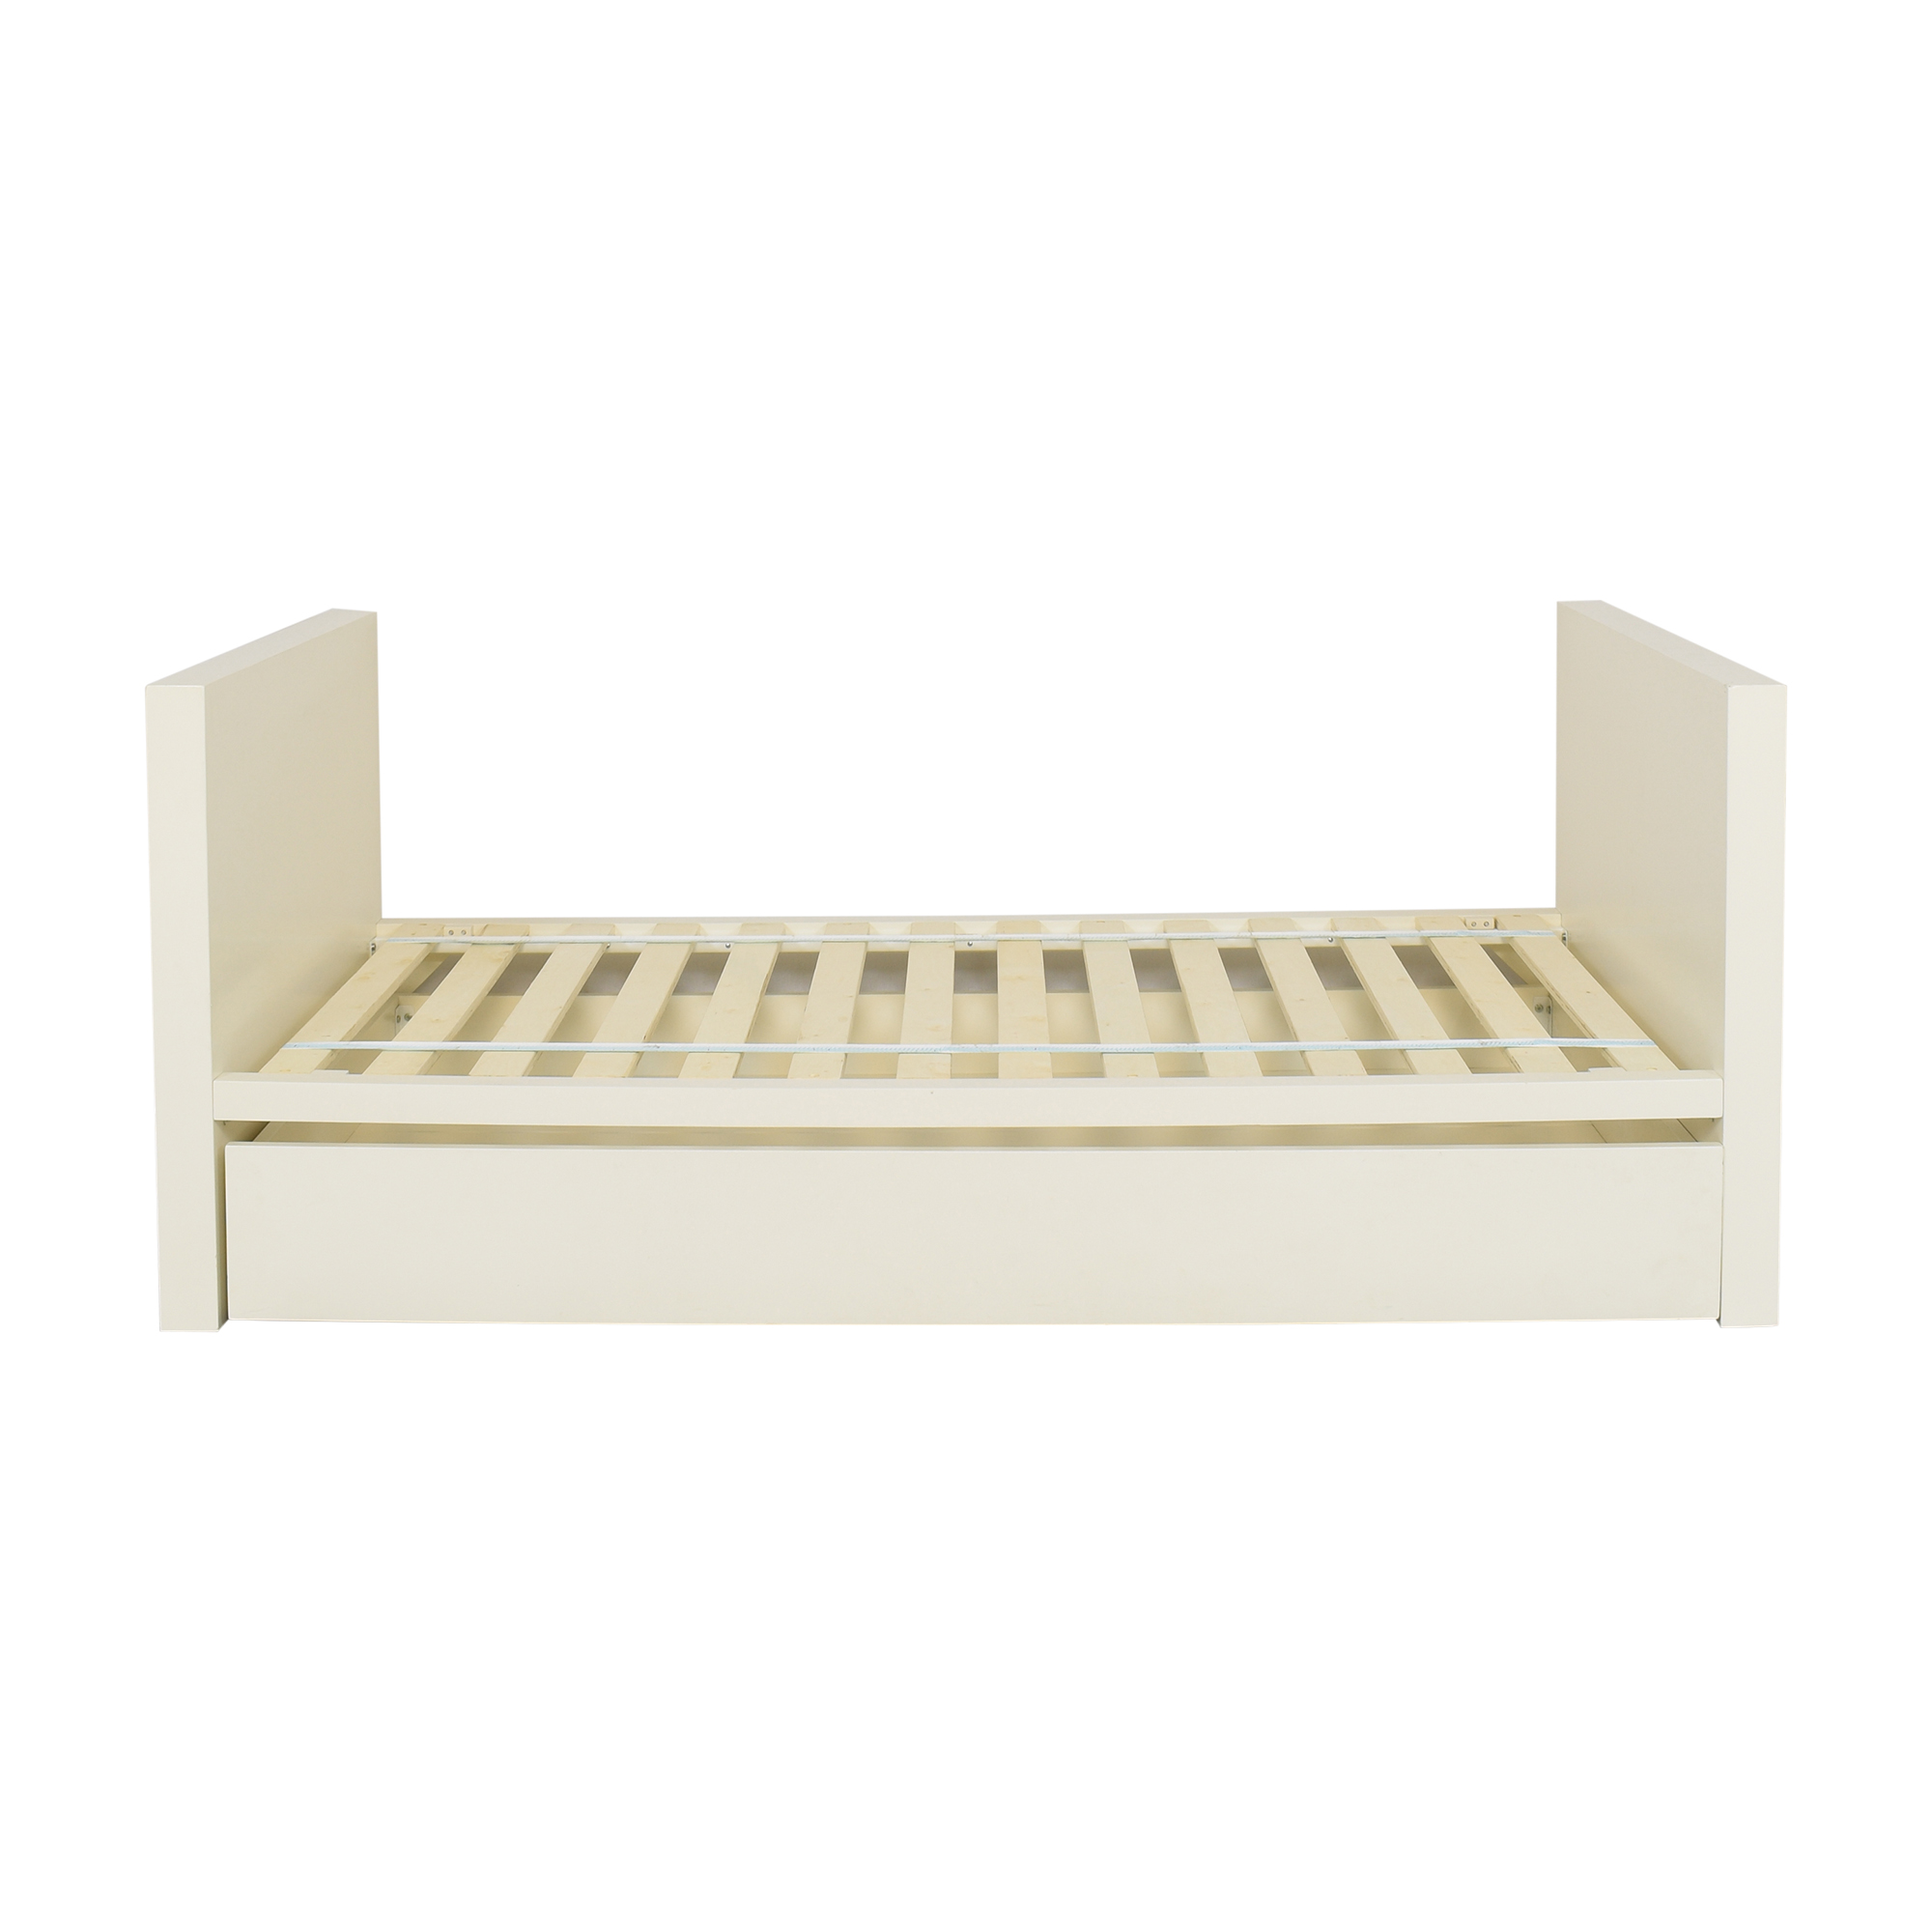 West Elm West Elm Parsons Day Bed off white